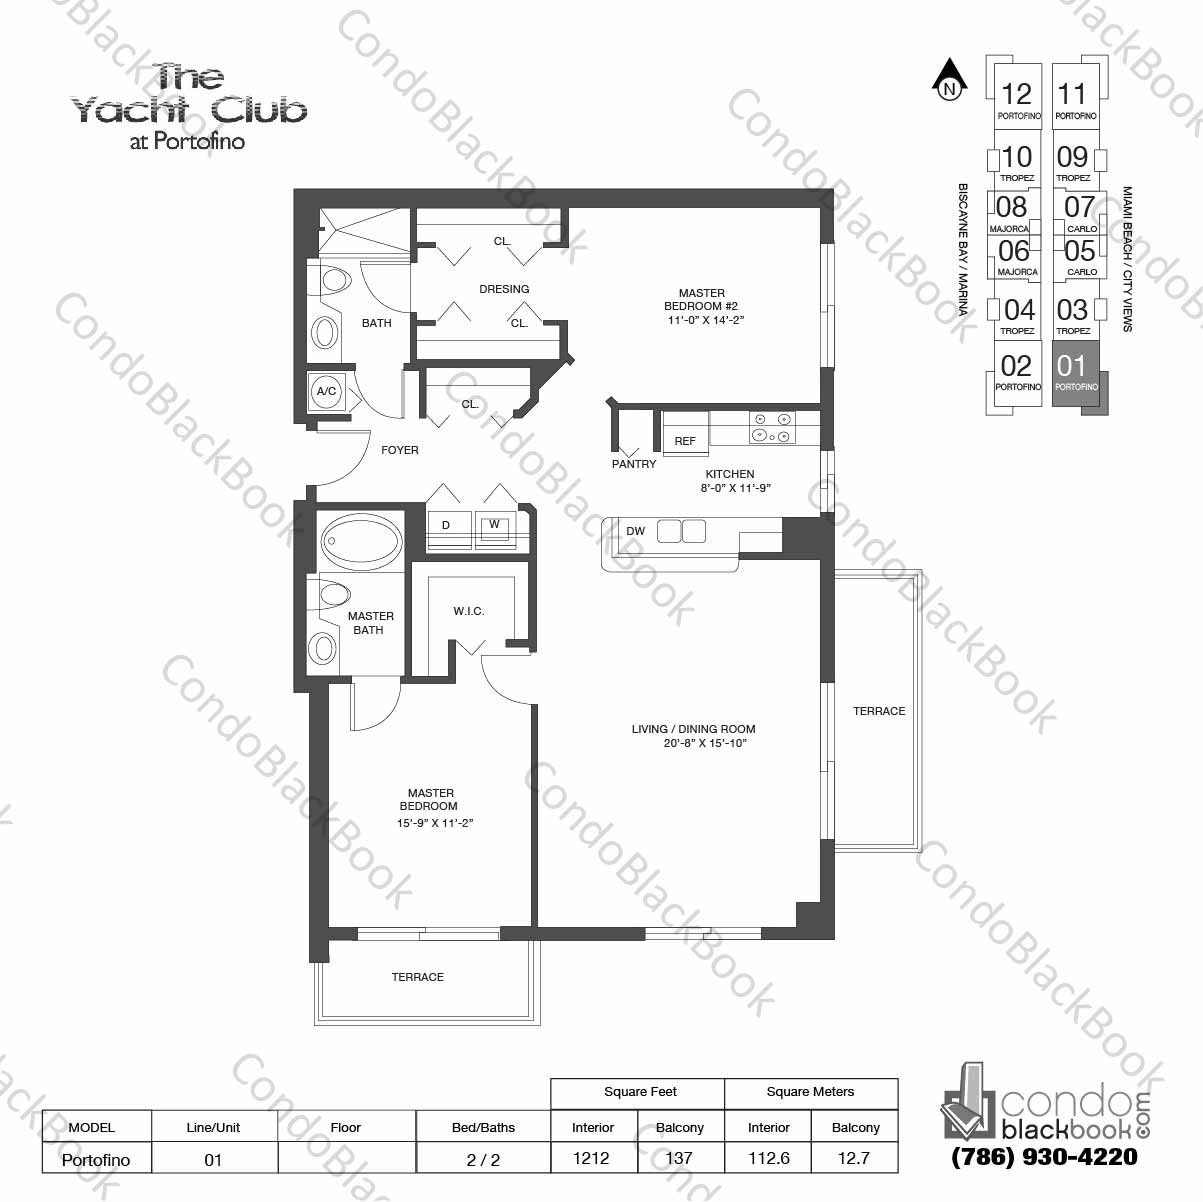 Floor plan for Yacht Club at Portofino South Beach Miami Beach, model Portofino , line 01, 2 / 2 bedrooms, 1212 sq ft